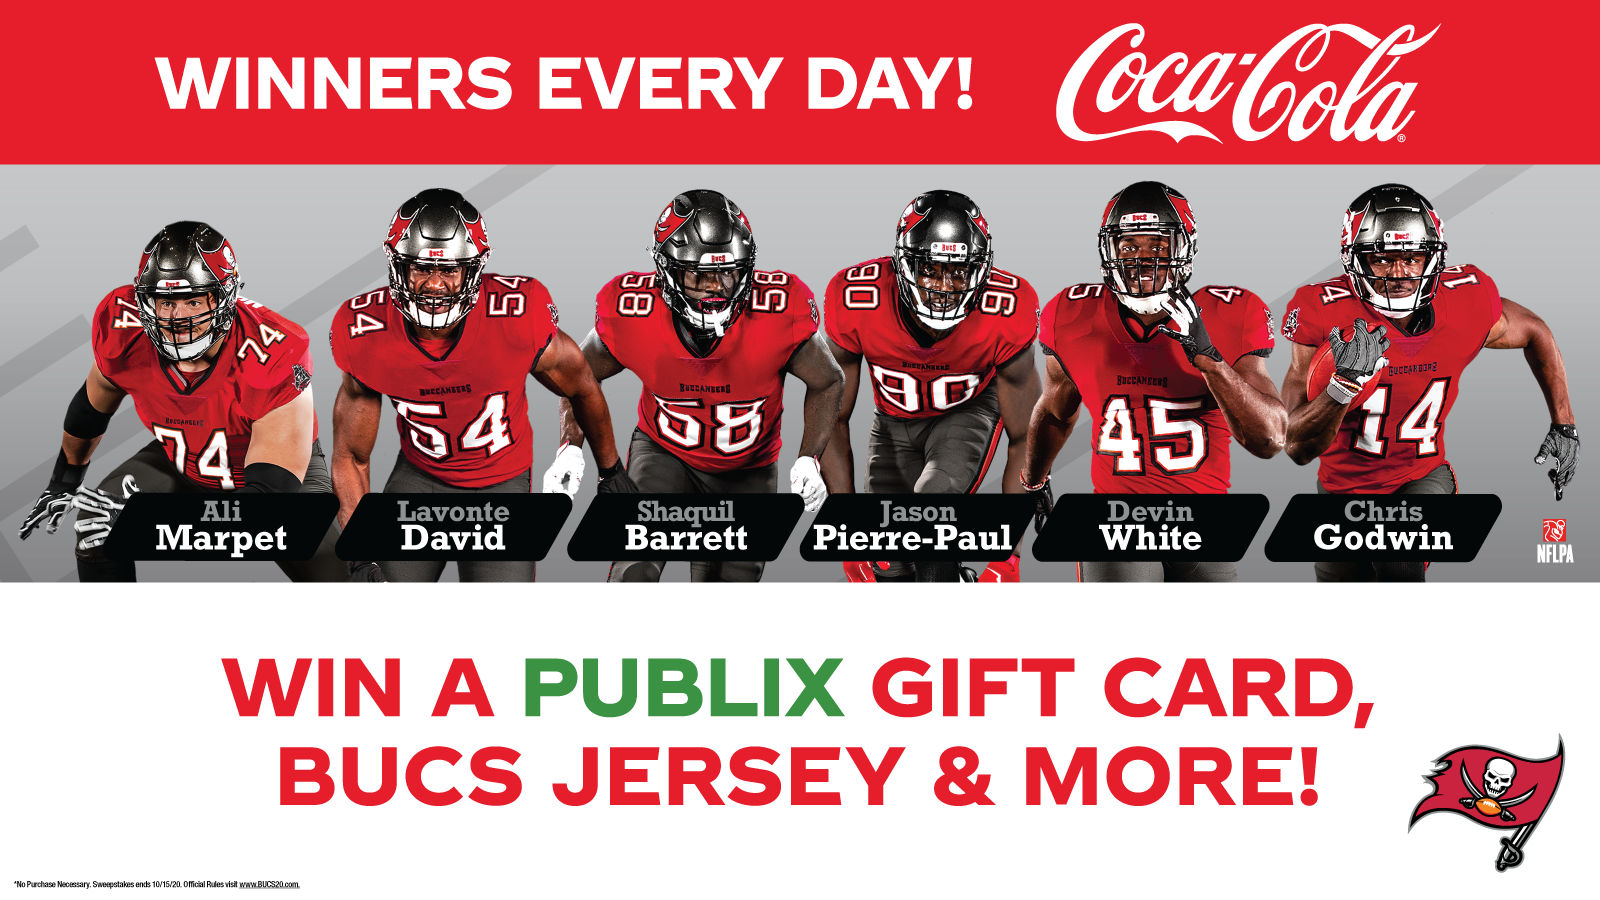 Enter the BUCS Home Tailgate Instant Win Game presented by Coca-Cola! Prizes Awarded Everyday! Enter now to win a Publix® Gift Card, BUCS Jersey, and more!